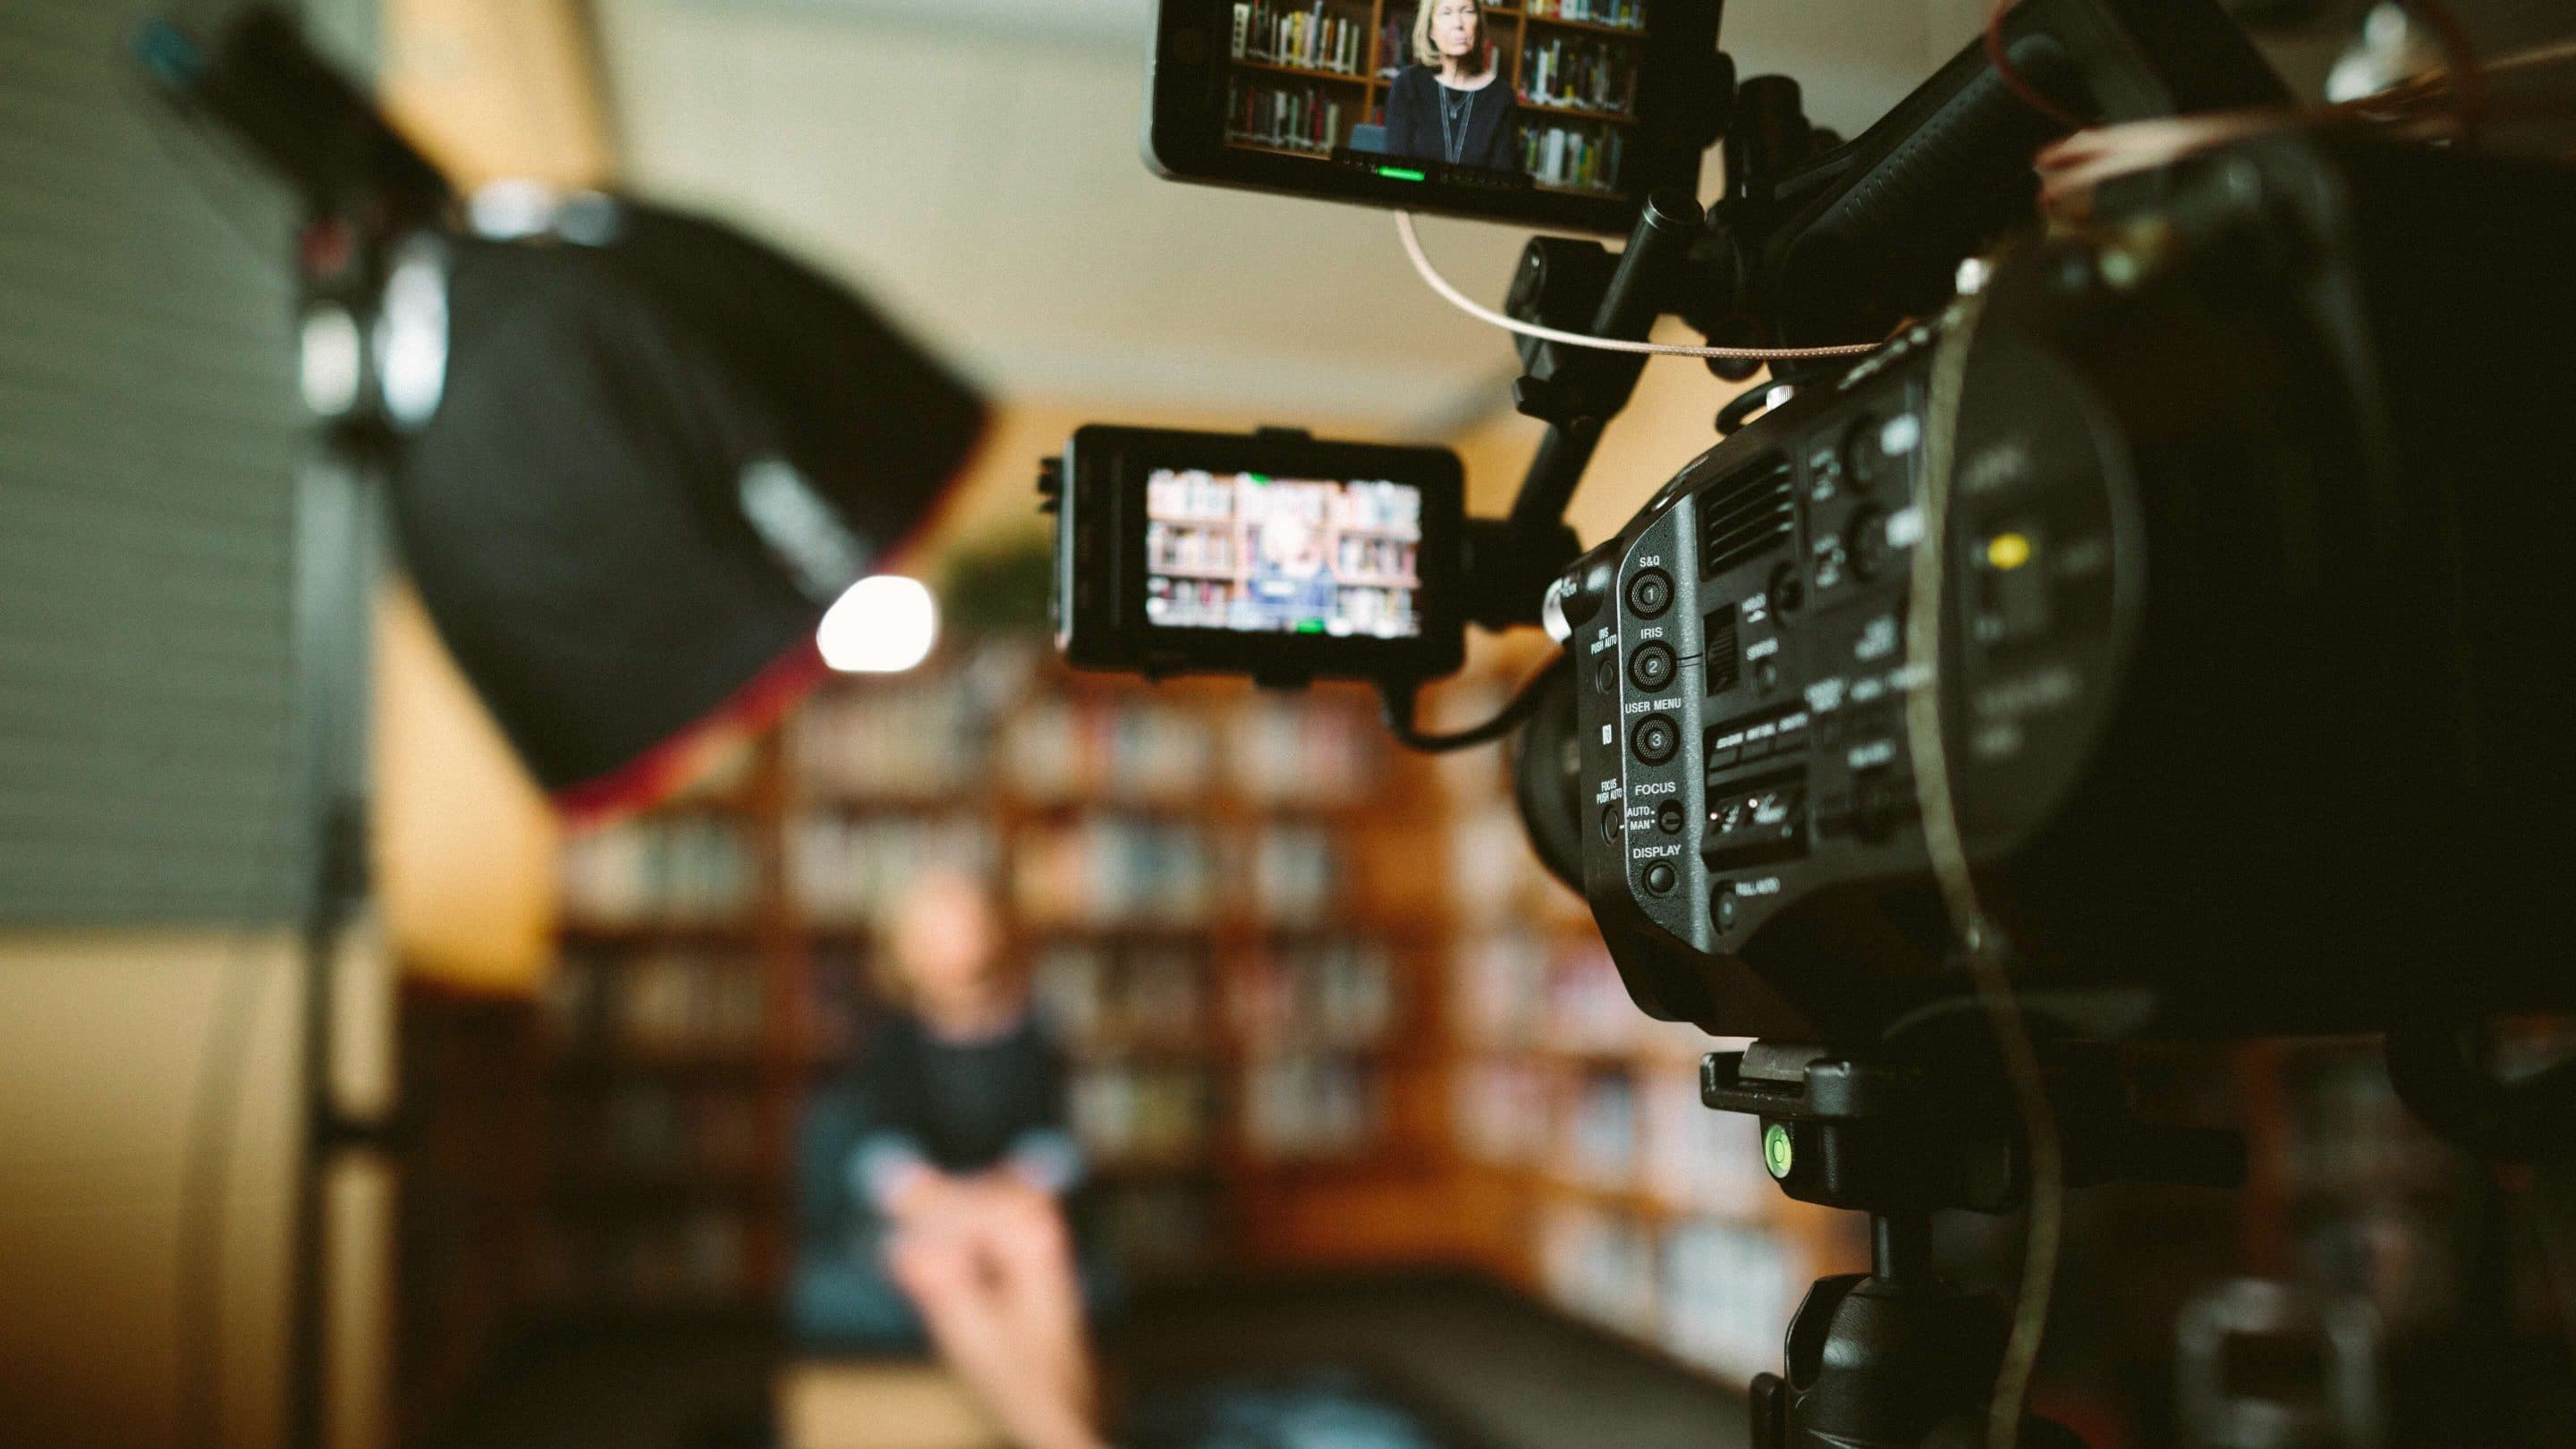 The 6 Essential Elements of Any Successful YouTube Channel